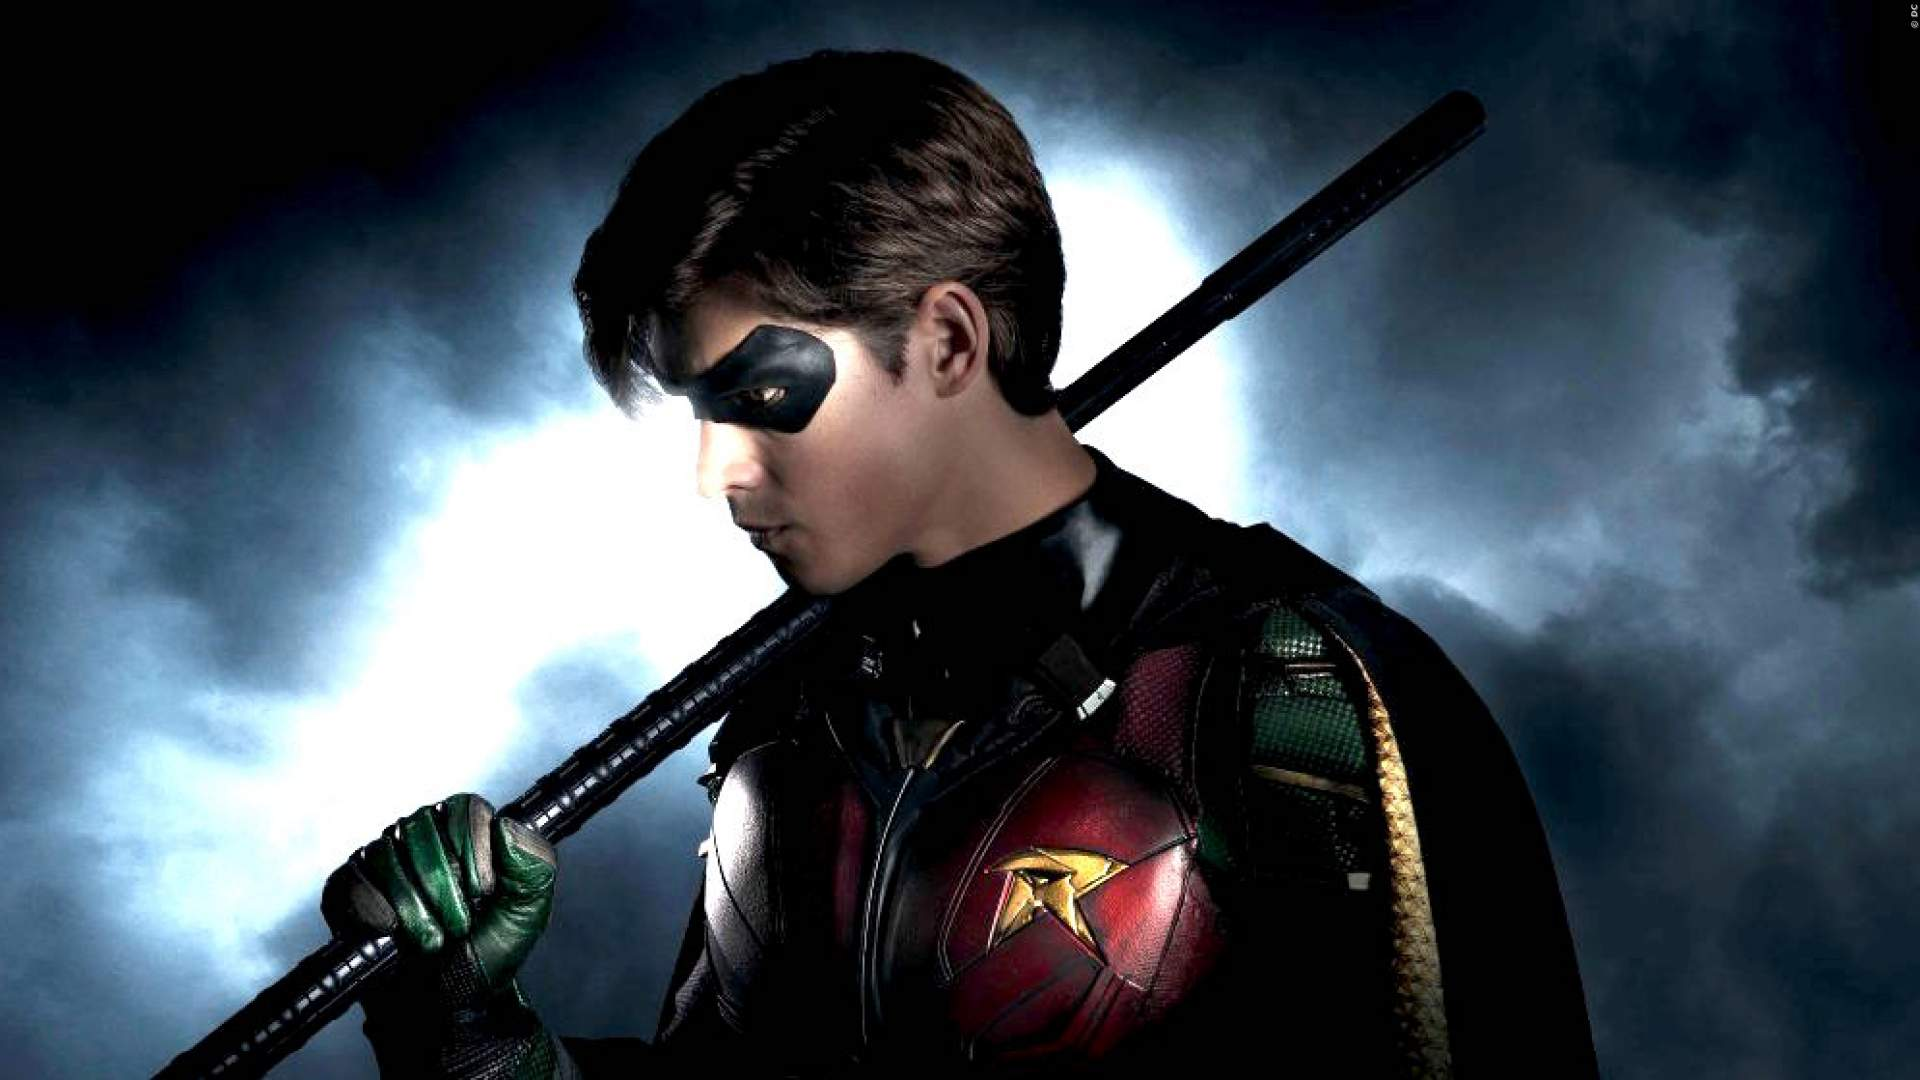 TITANS: Staffel 2 mit 'Game Of Thrones'-Star als Batman